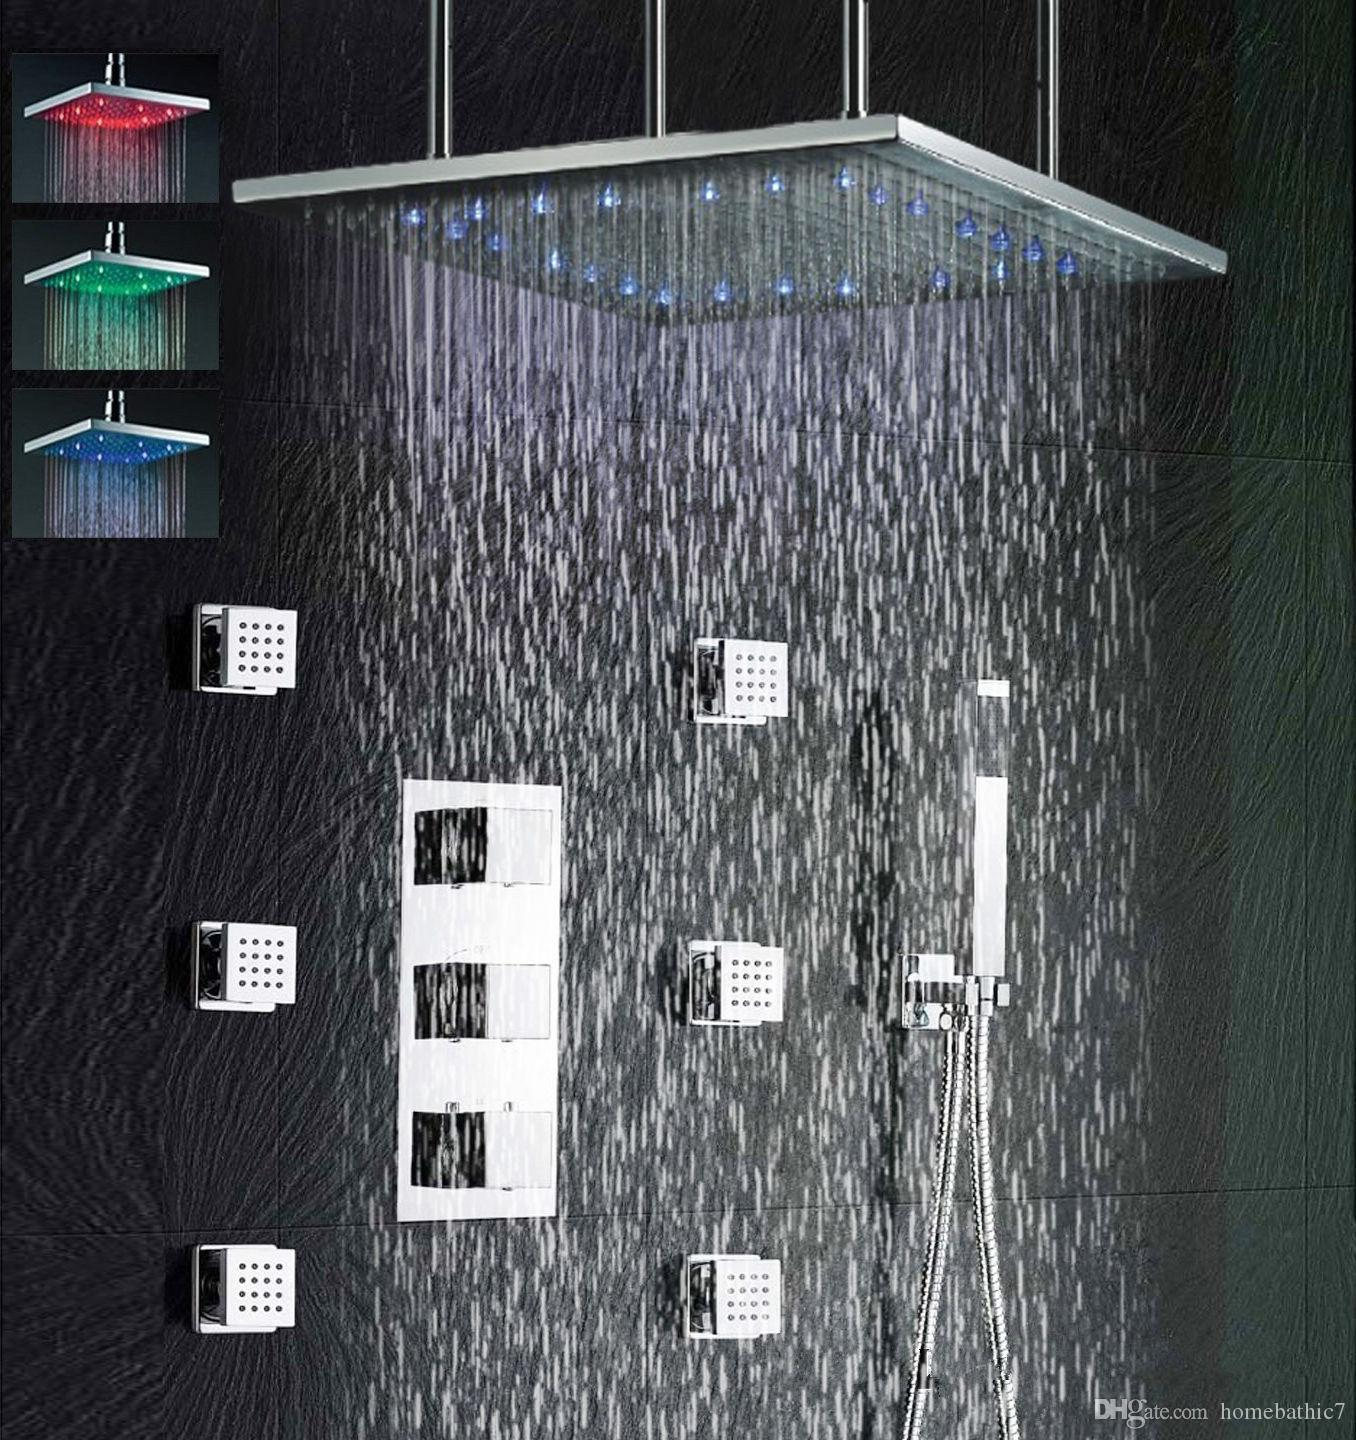 2019 Brushed Nickel 24 Led Rain Shower Head Brass Chrome Thermostatic Mixer Valve Set With Body Massage Jets Faucet From Homebathic7 804 02